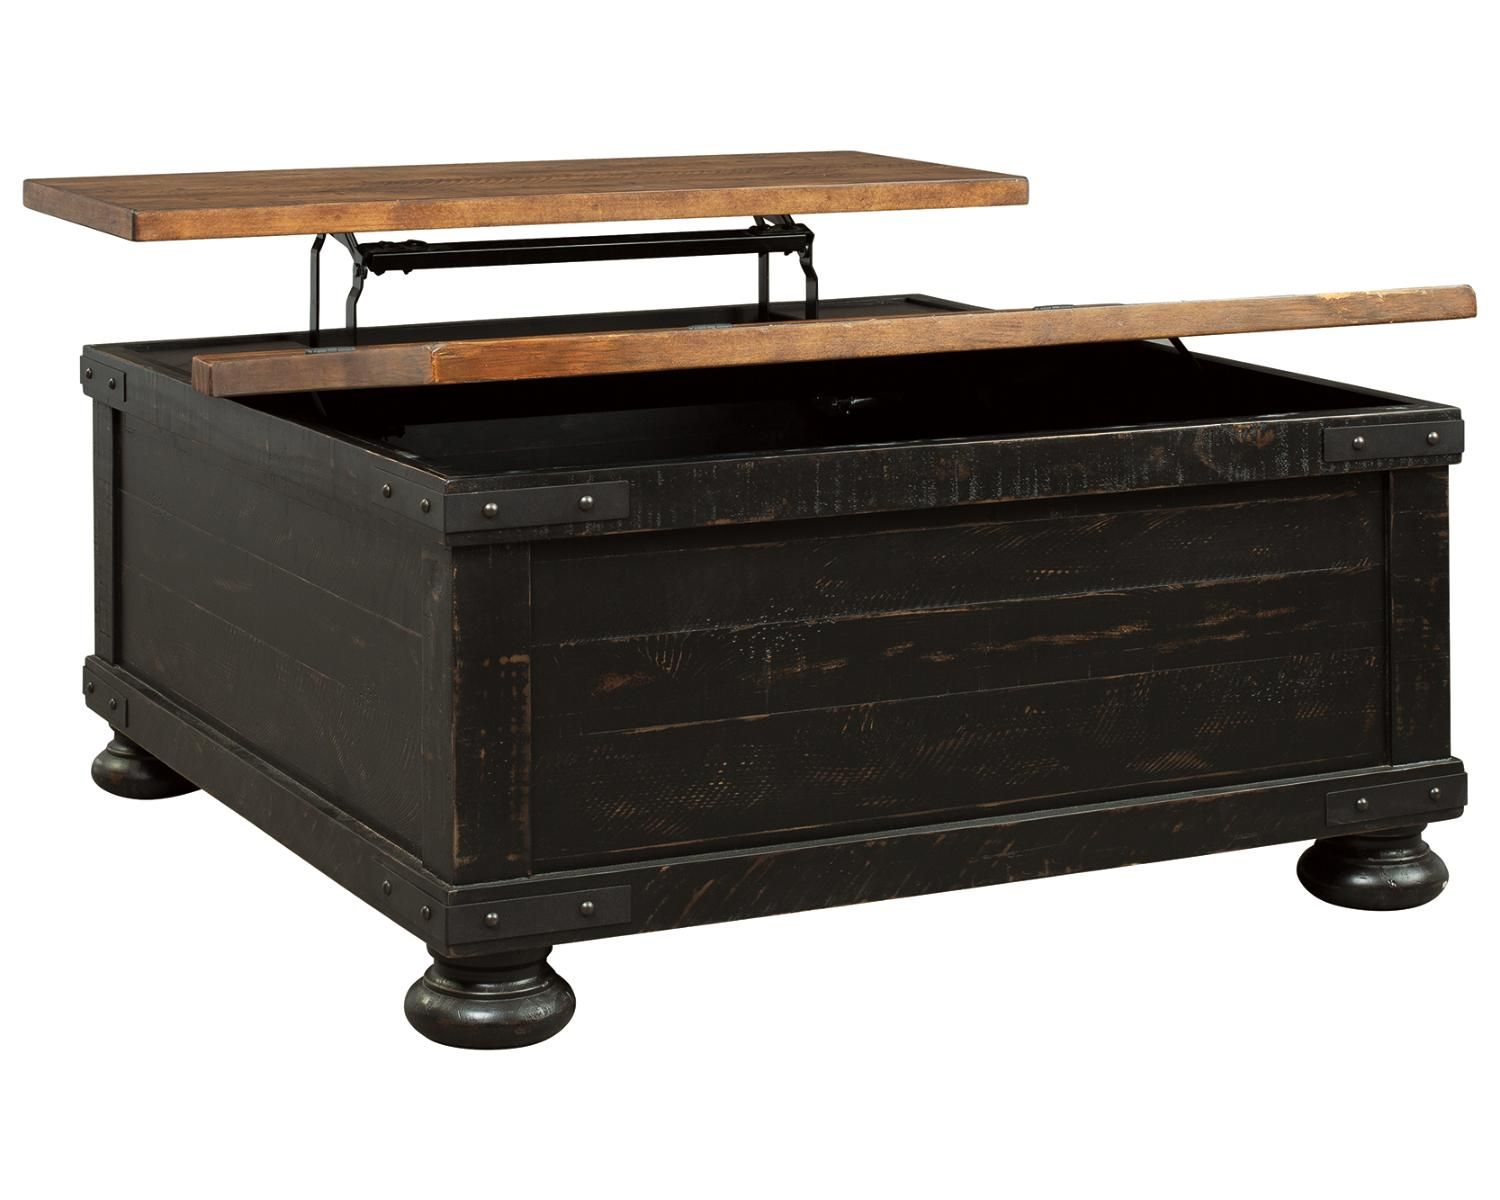 Home At home store, Lift top coffee table, Signature design